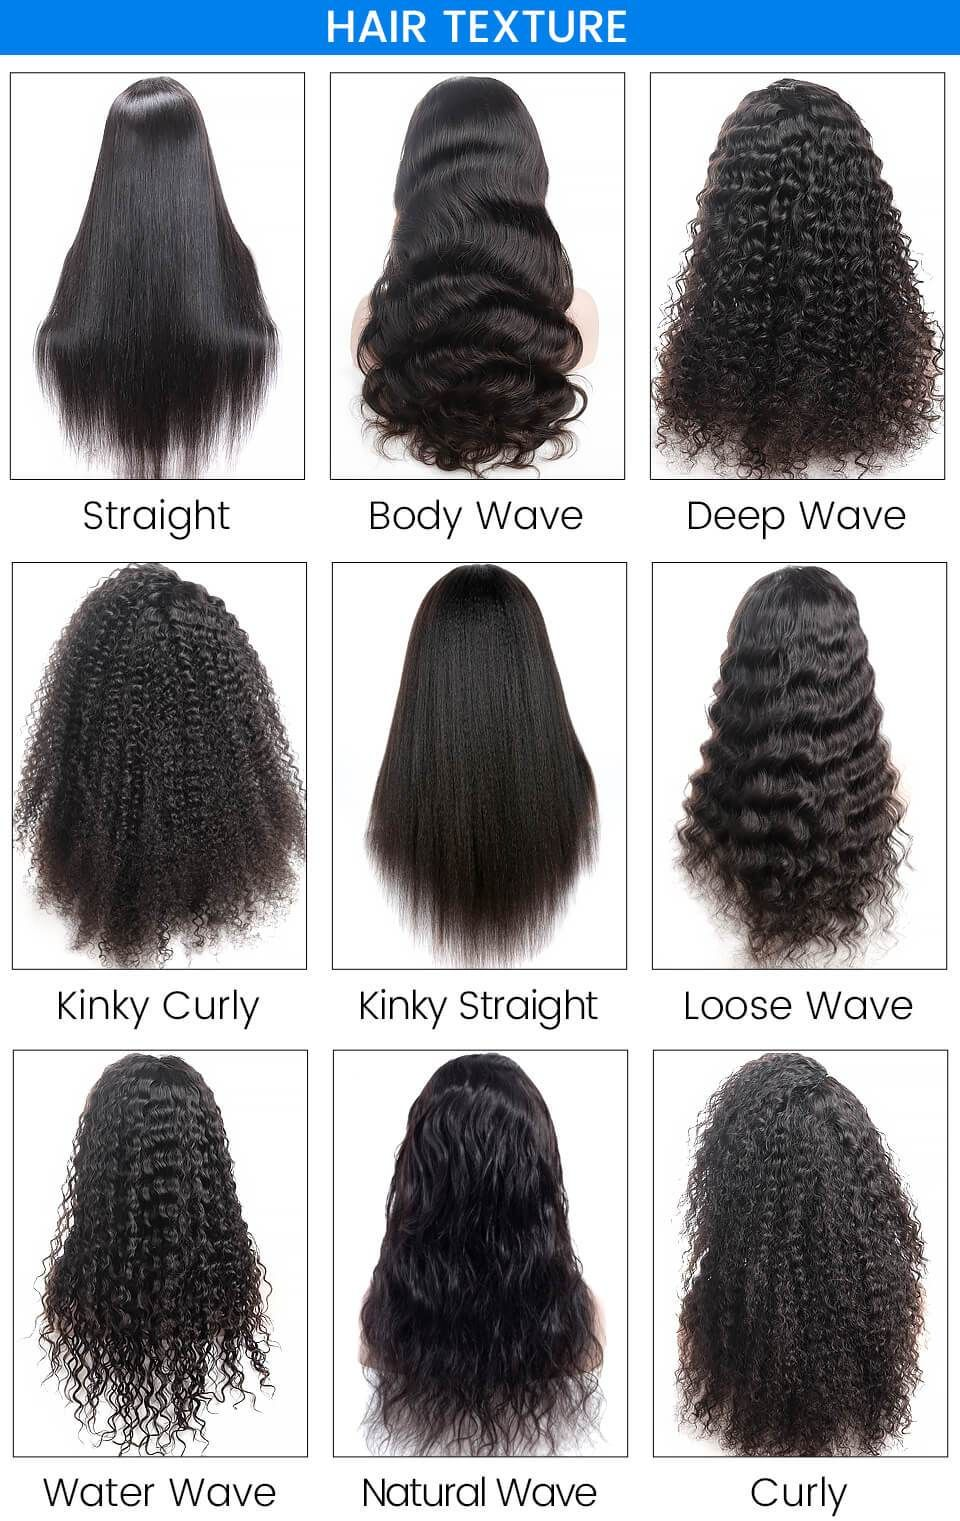 Full Lace Wigs Human Hair Straight In 2020 Wig Hairstyles Curly Hair Styles Textured Hair